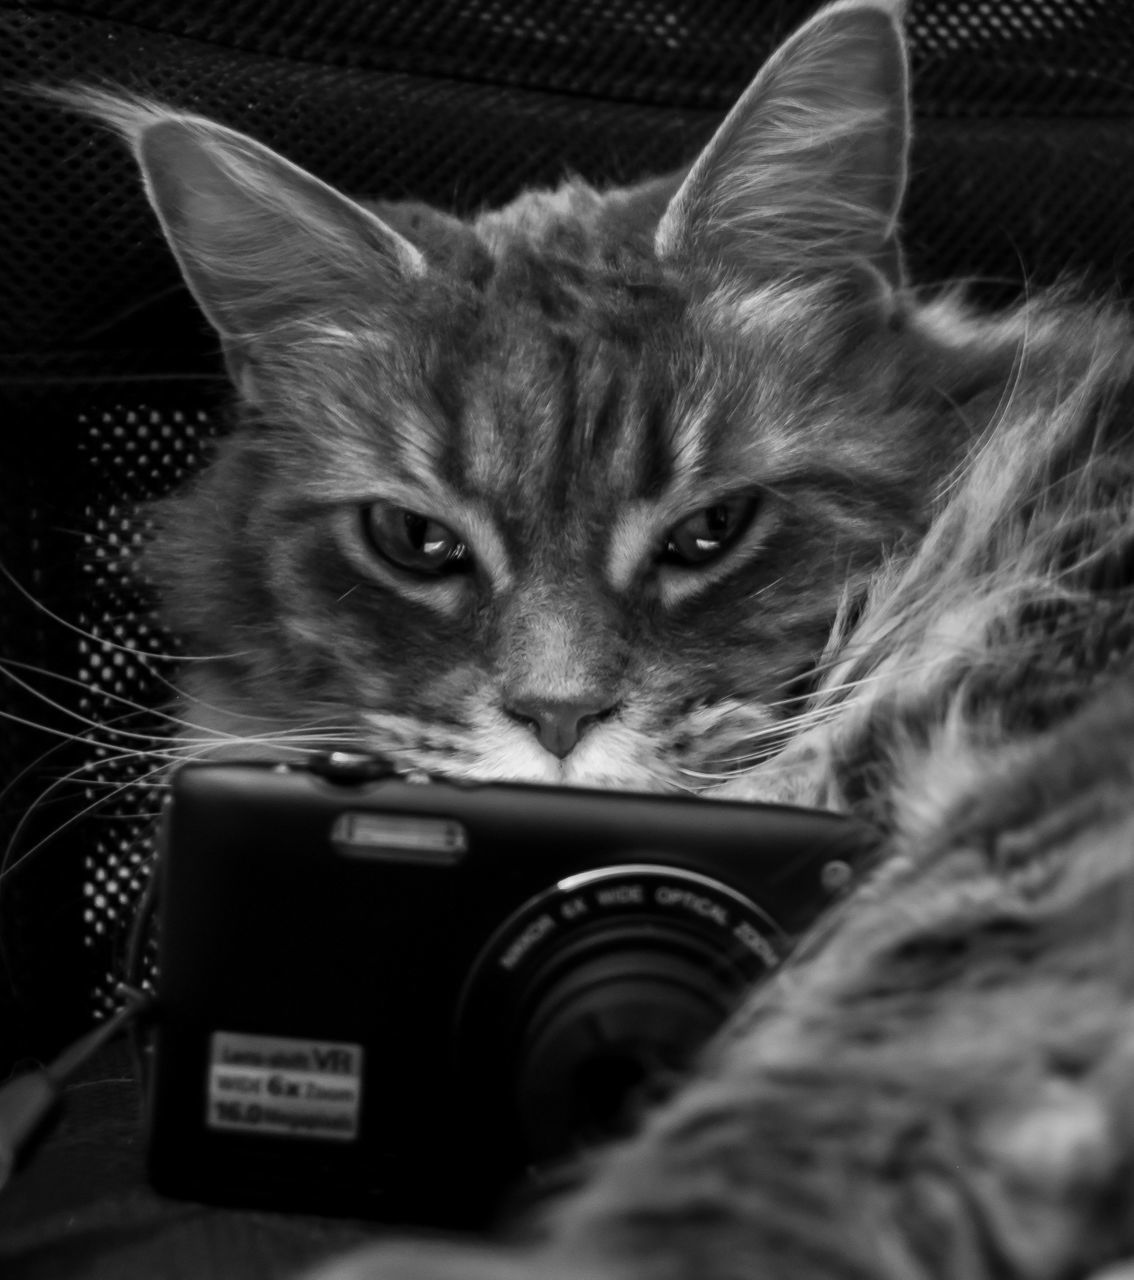 domestic cat, mammal, domestic animals, technology, animal themes, pets, feline, indoors, camera - photographic equipment, photography themes, no people, close-up, day